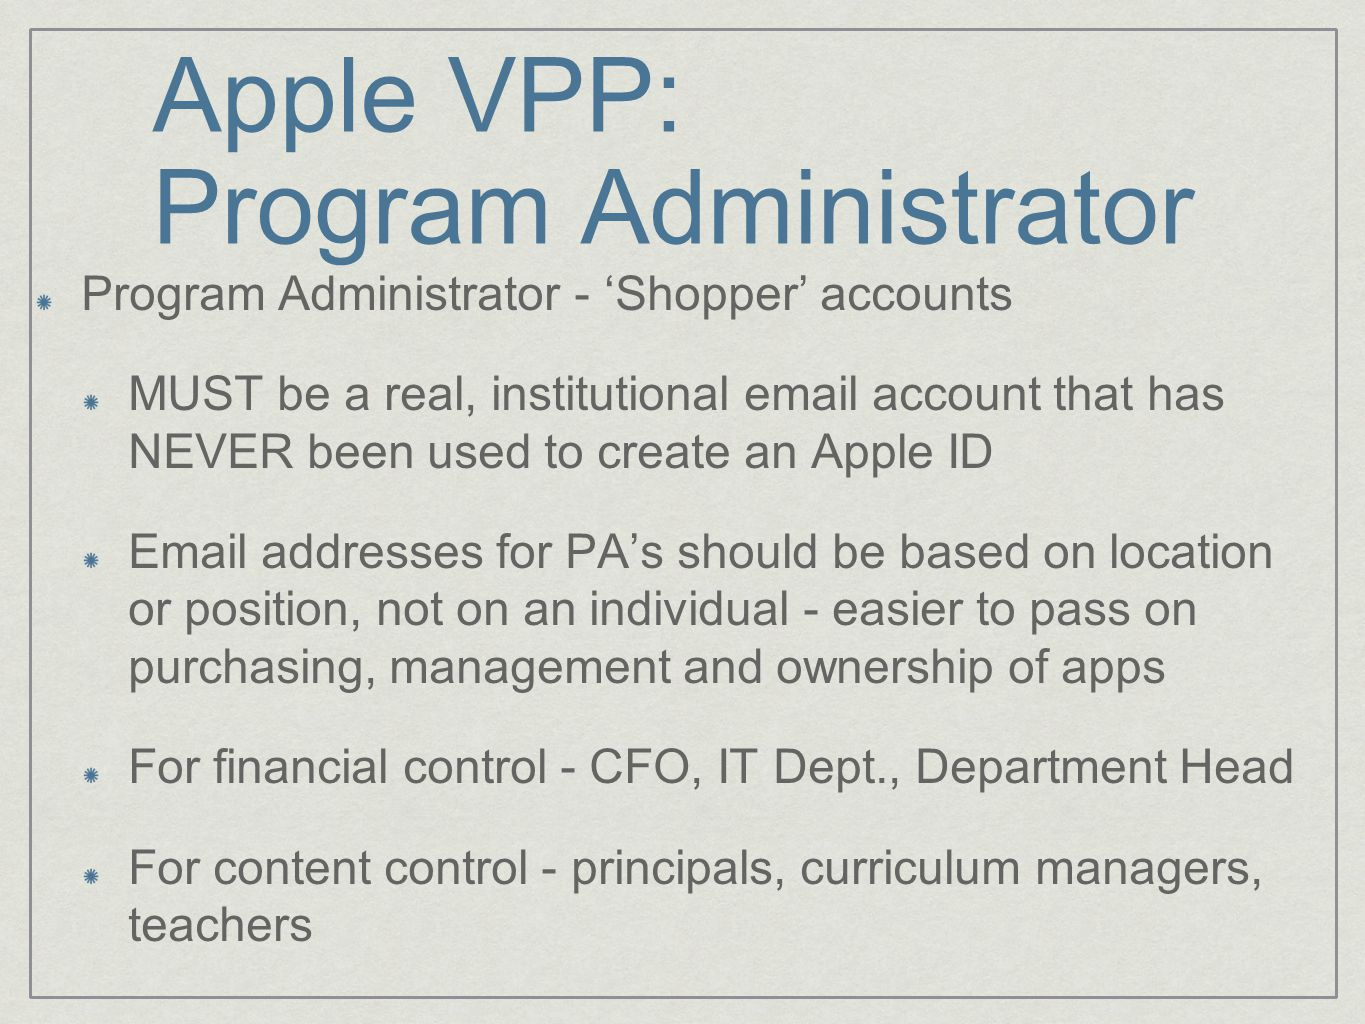 Apple VPP: Program Administrator Program Administrator - 'Shopper' accounts MUST be a real, institutional email account that has NEVER been used to create an Apple ID Email addresses for PA's should be based on location or position, not on an individual - easier to pass on purchasing, management and ownership of apps For financial control - CFO, IT Dept., Department Head For content control - principals, curriculum managers, teachers